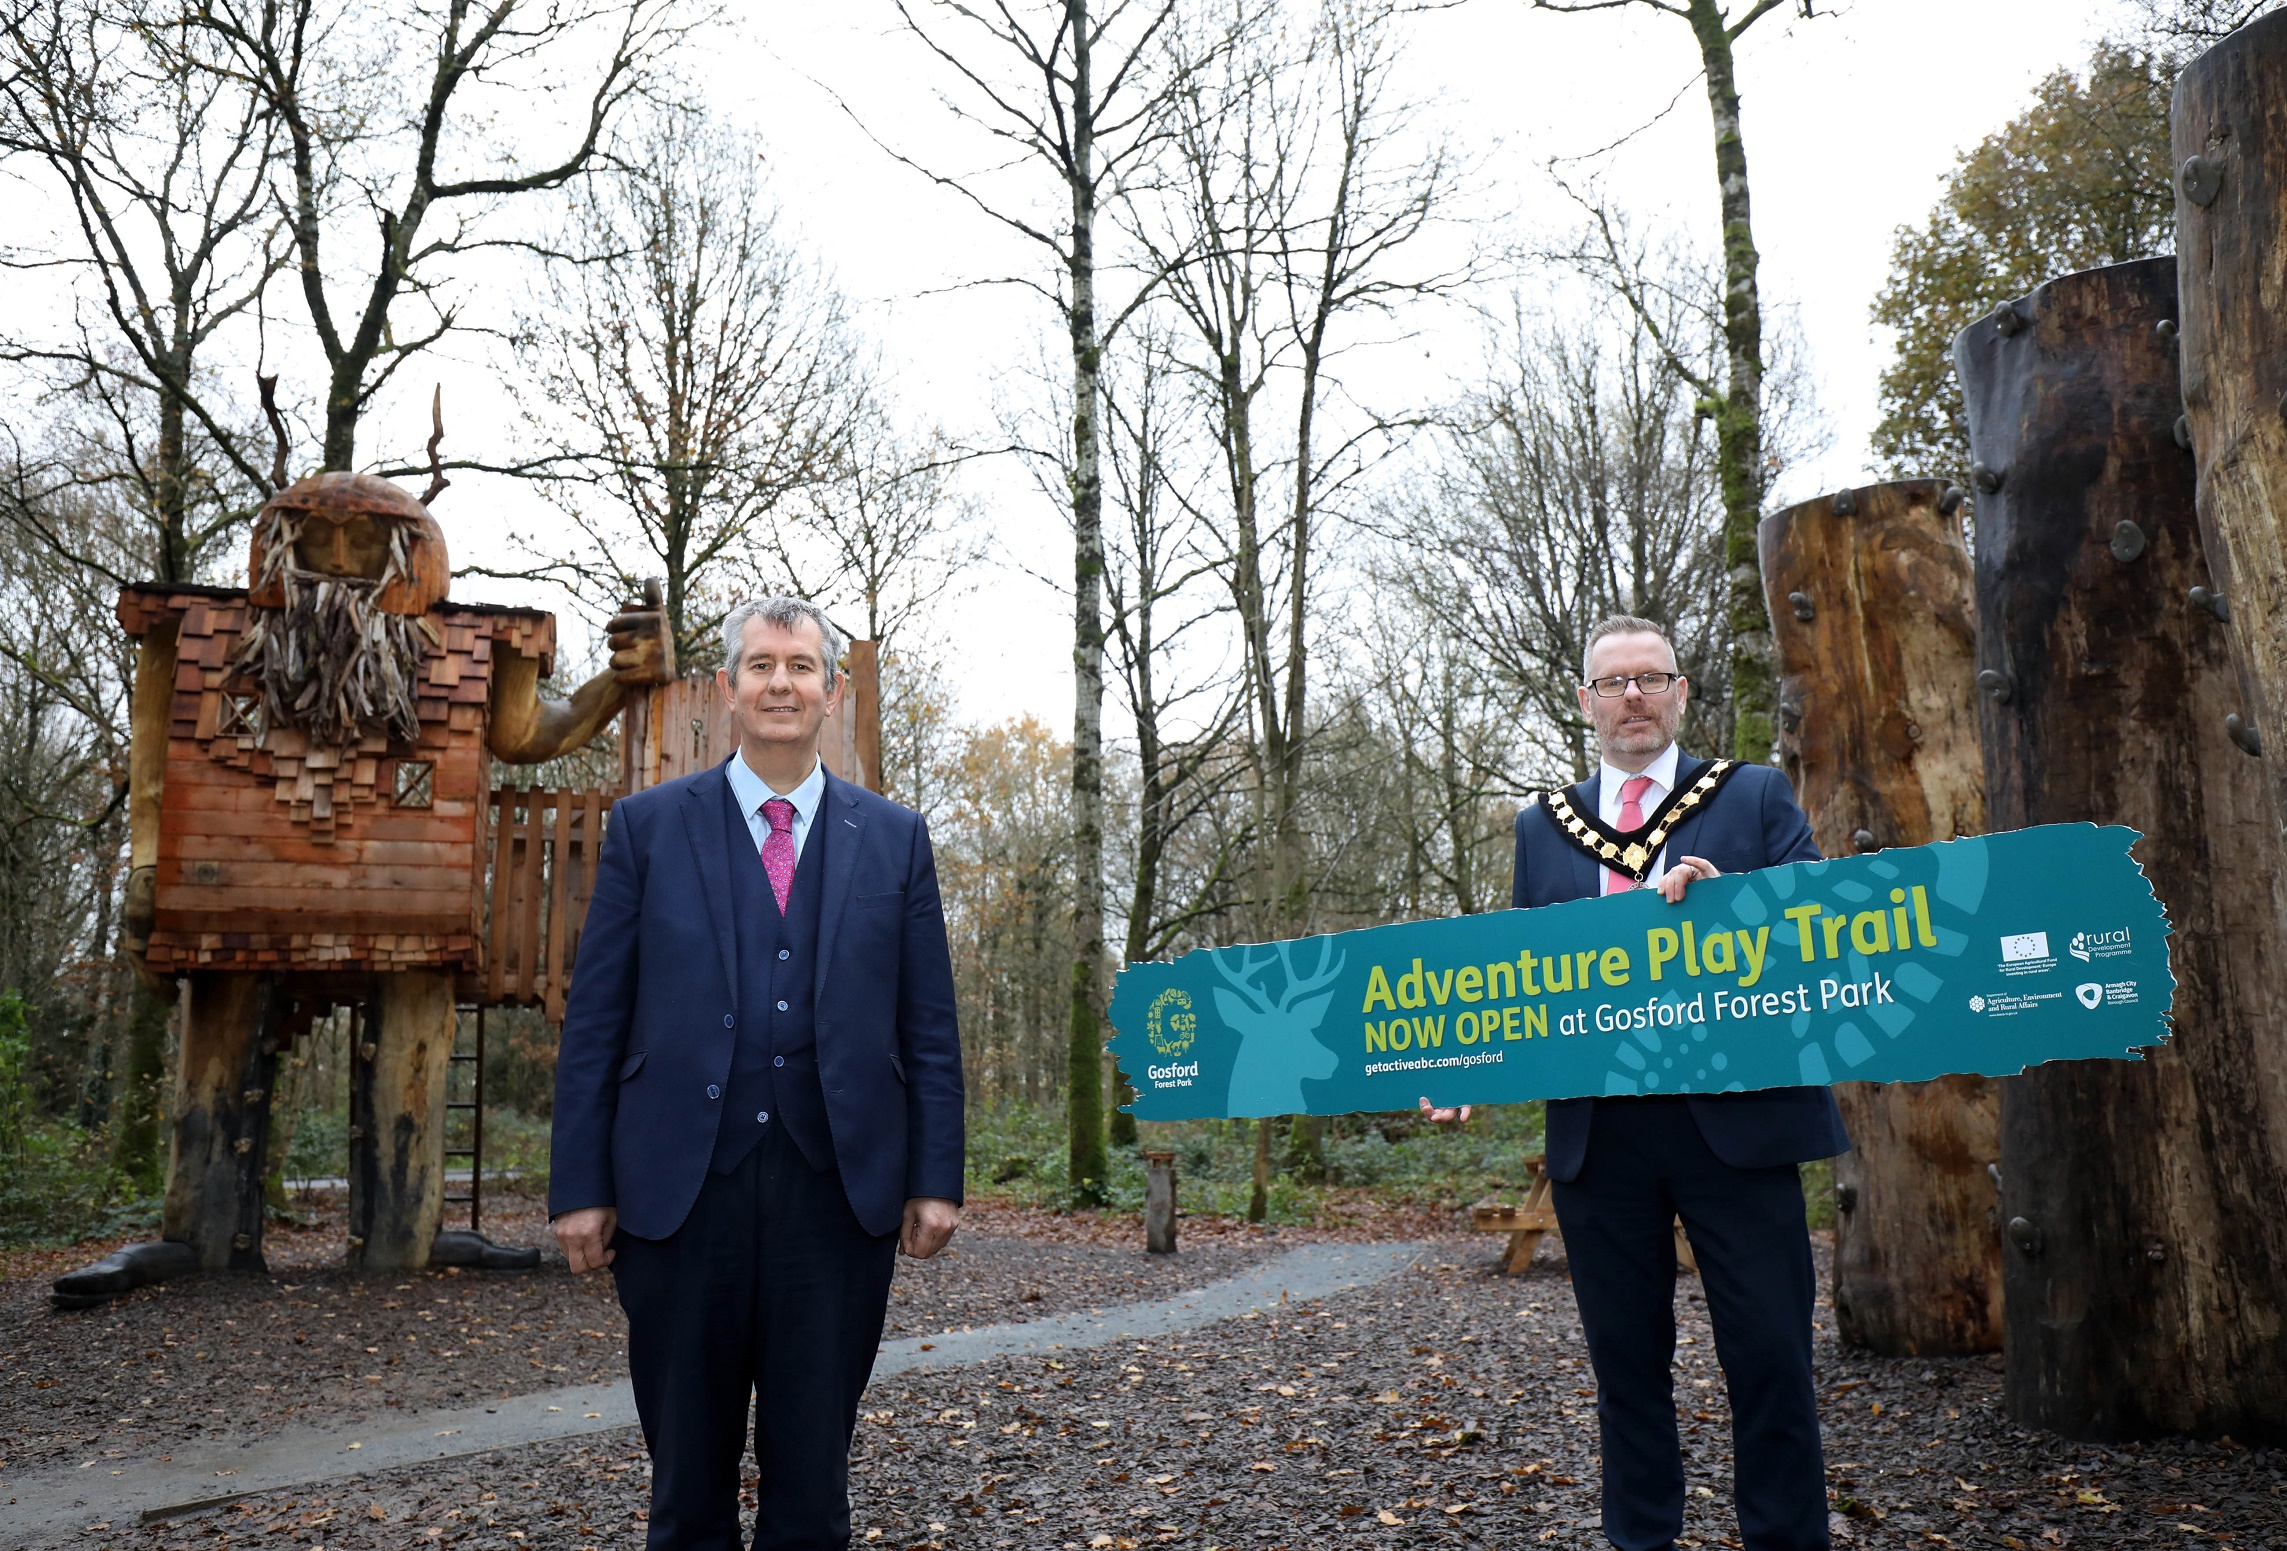 Gosford Forest Park - Poots opens £850,000 Adventure Play Trail in Gosford Forest Park - Newry headlines